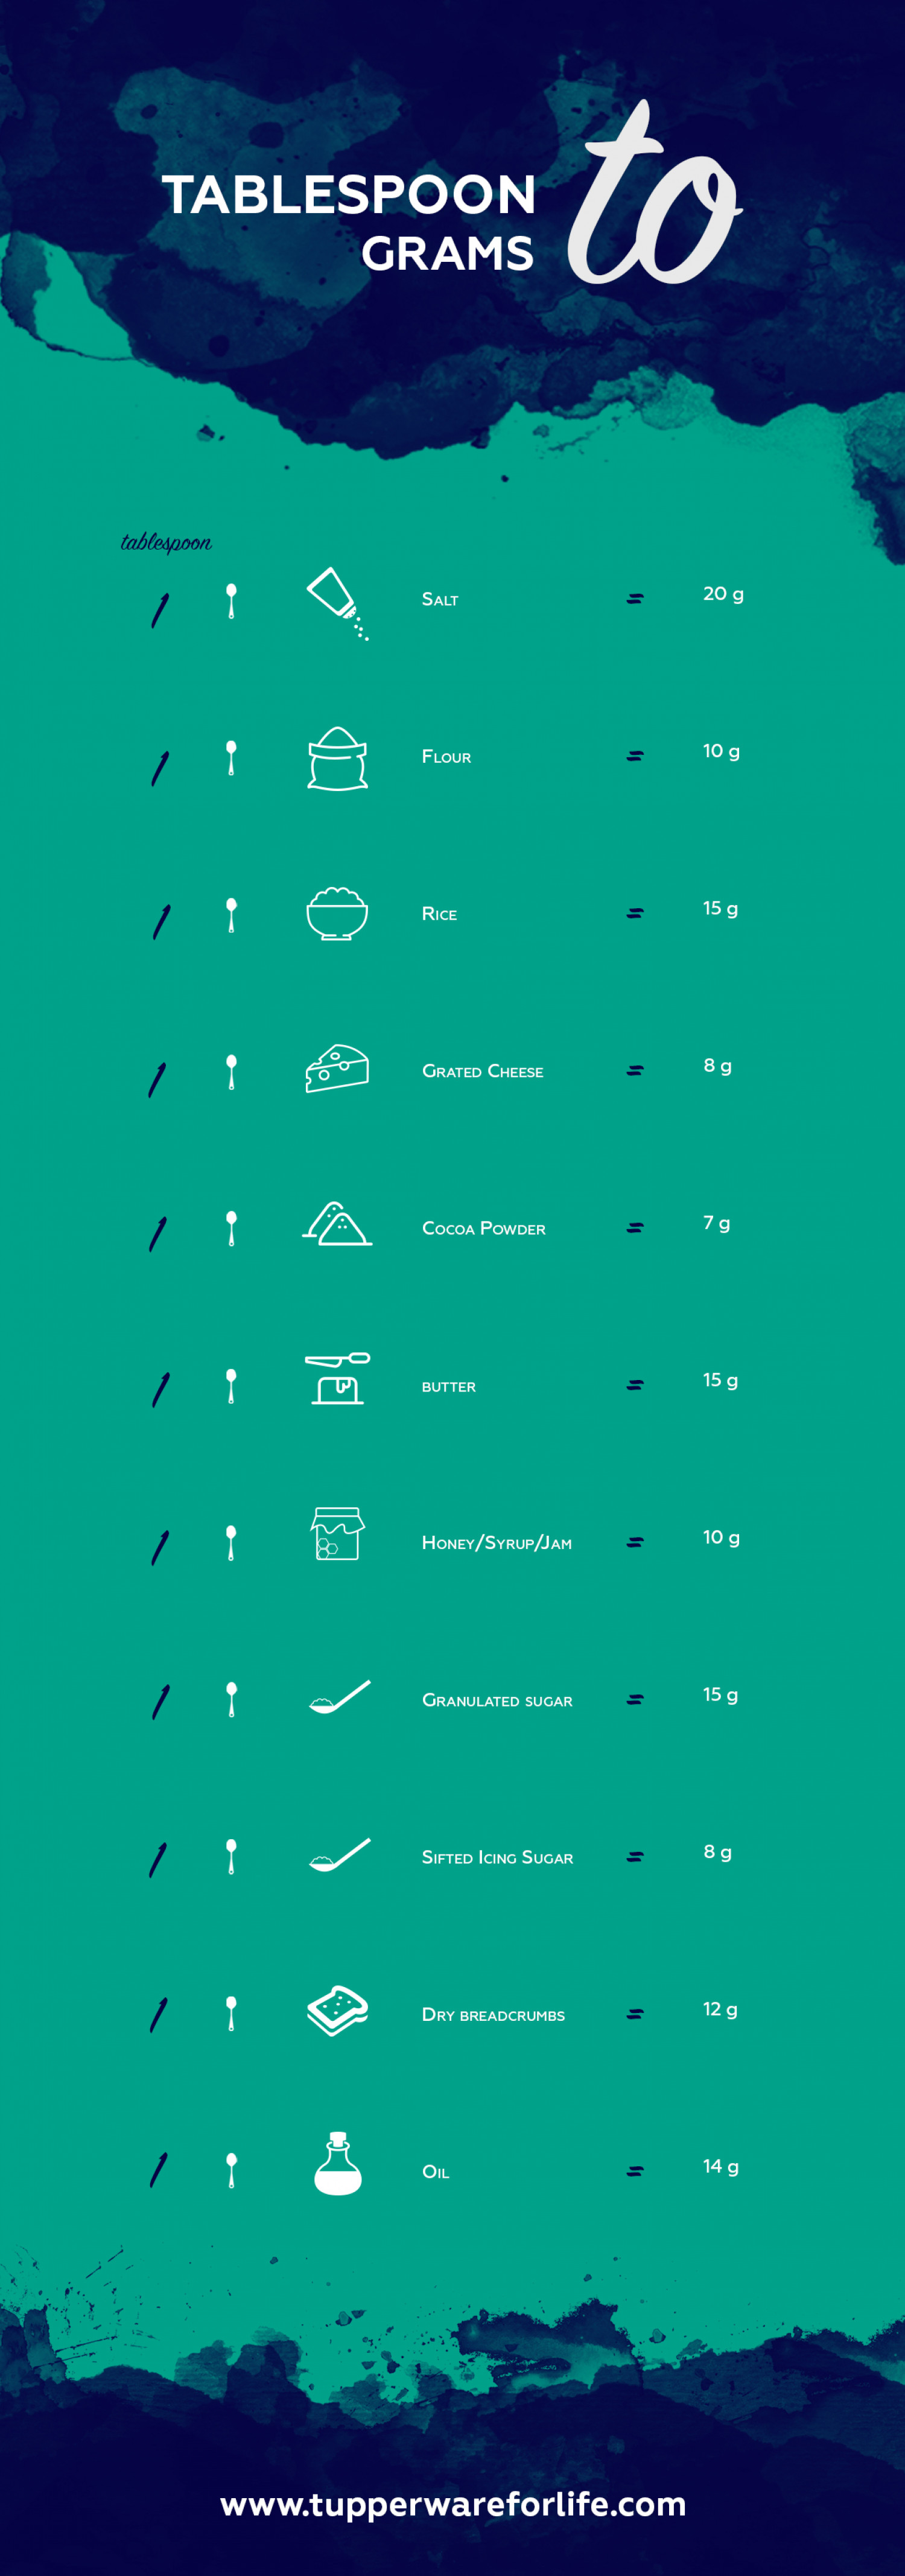 Tablespoon to grams conversion chart for baking visual tablespoon to grams conversion chart for baking infographic geenschuldenfo Image collections